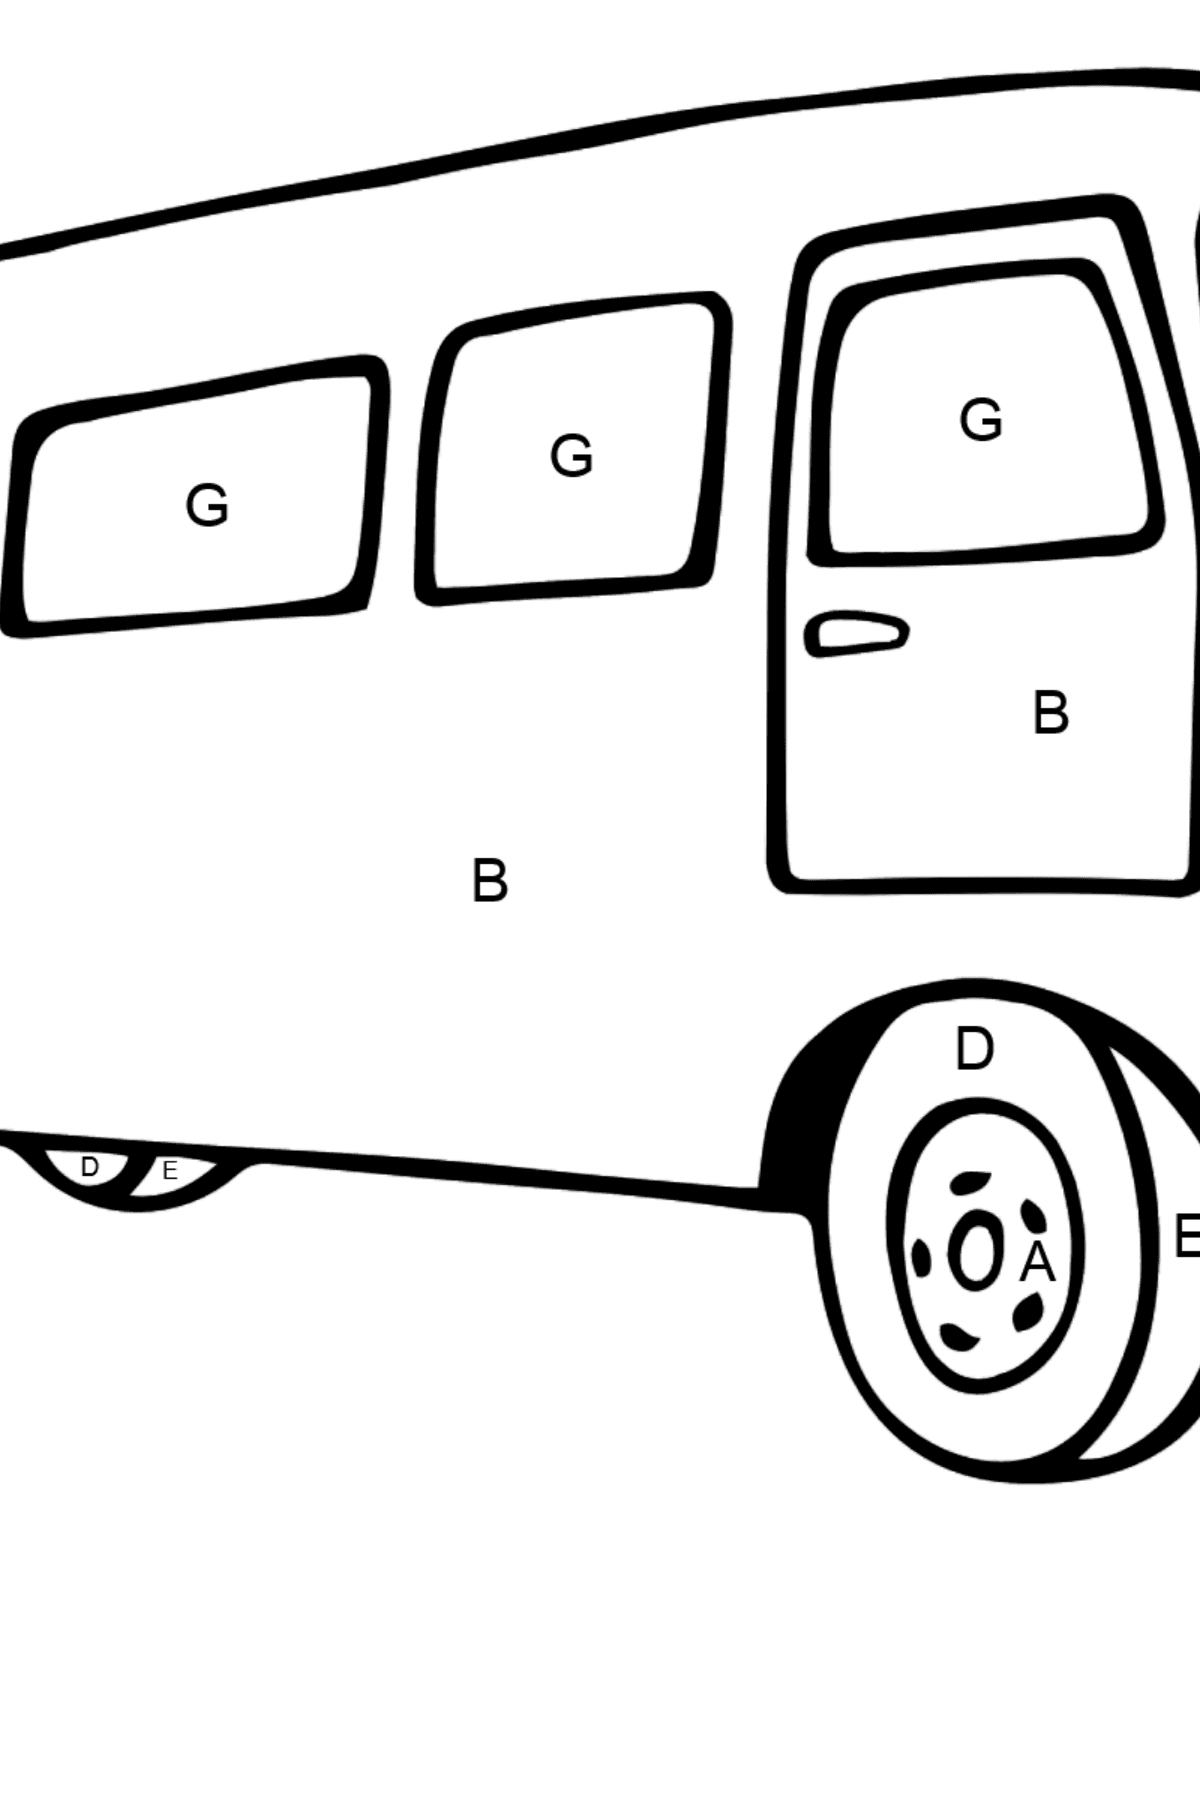 Coloring Page - A Traveling Bus - Coloring by Letters for Kids